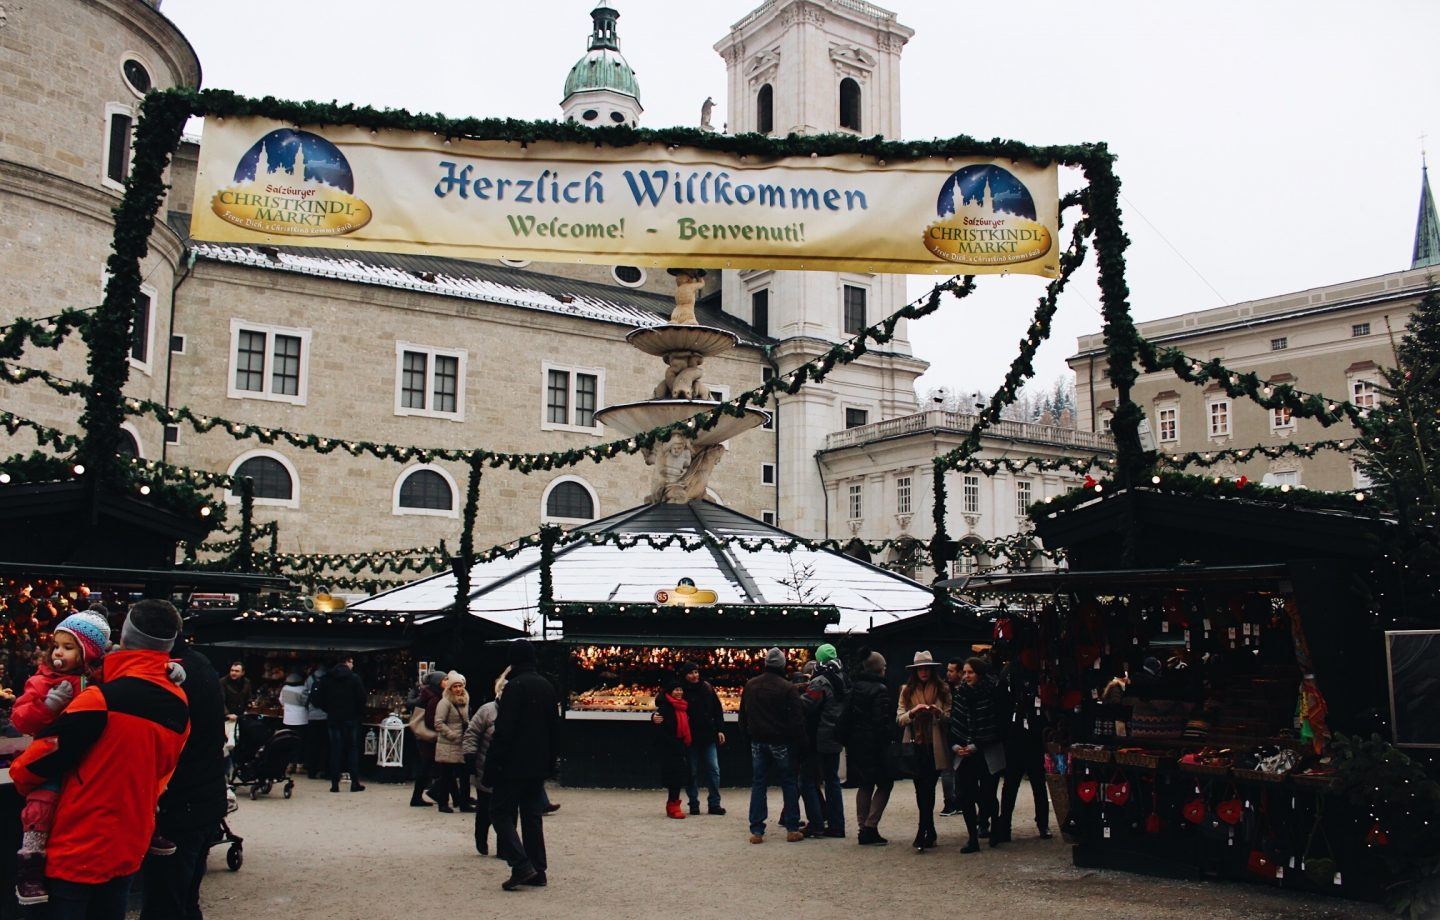 The entrance to a Christmas market in Salzburg, Austria!